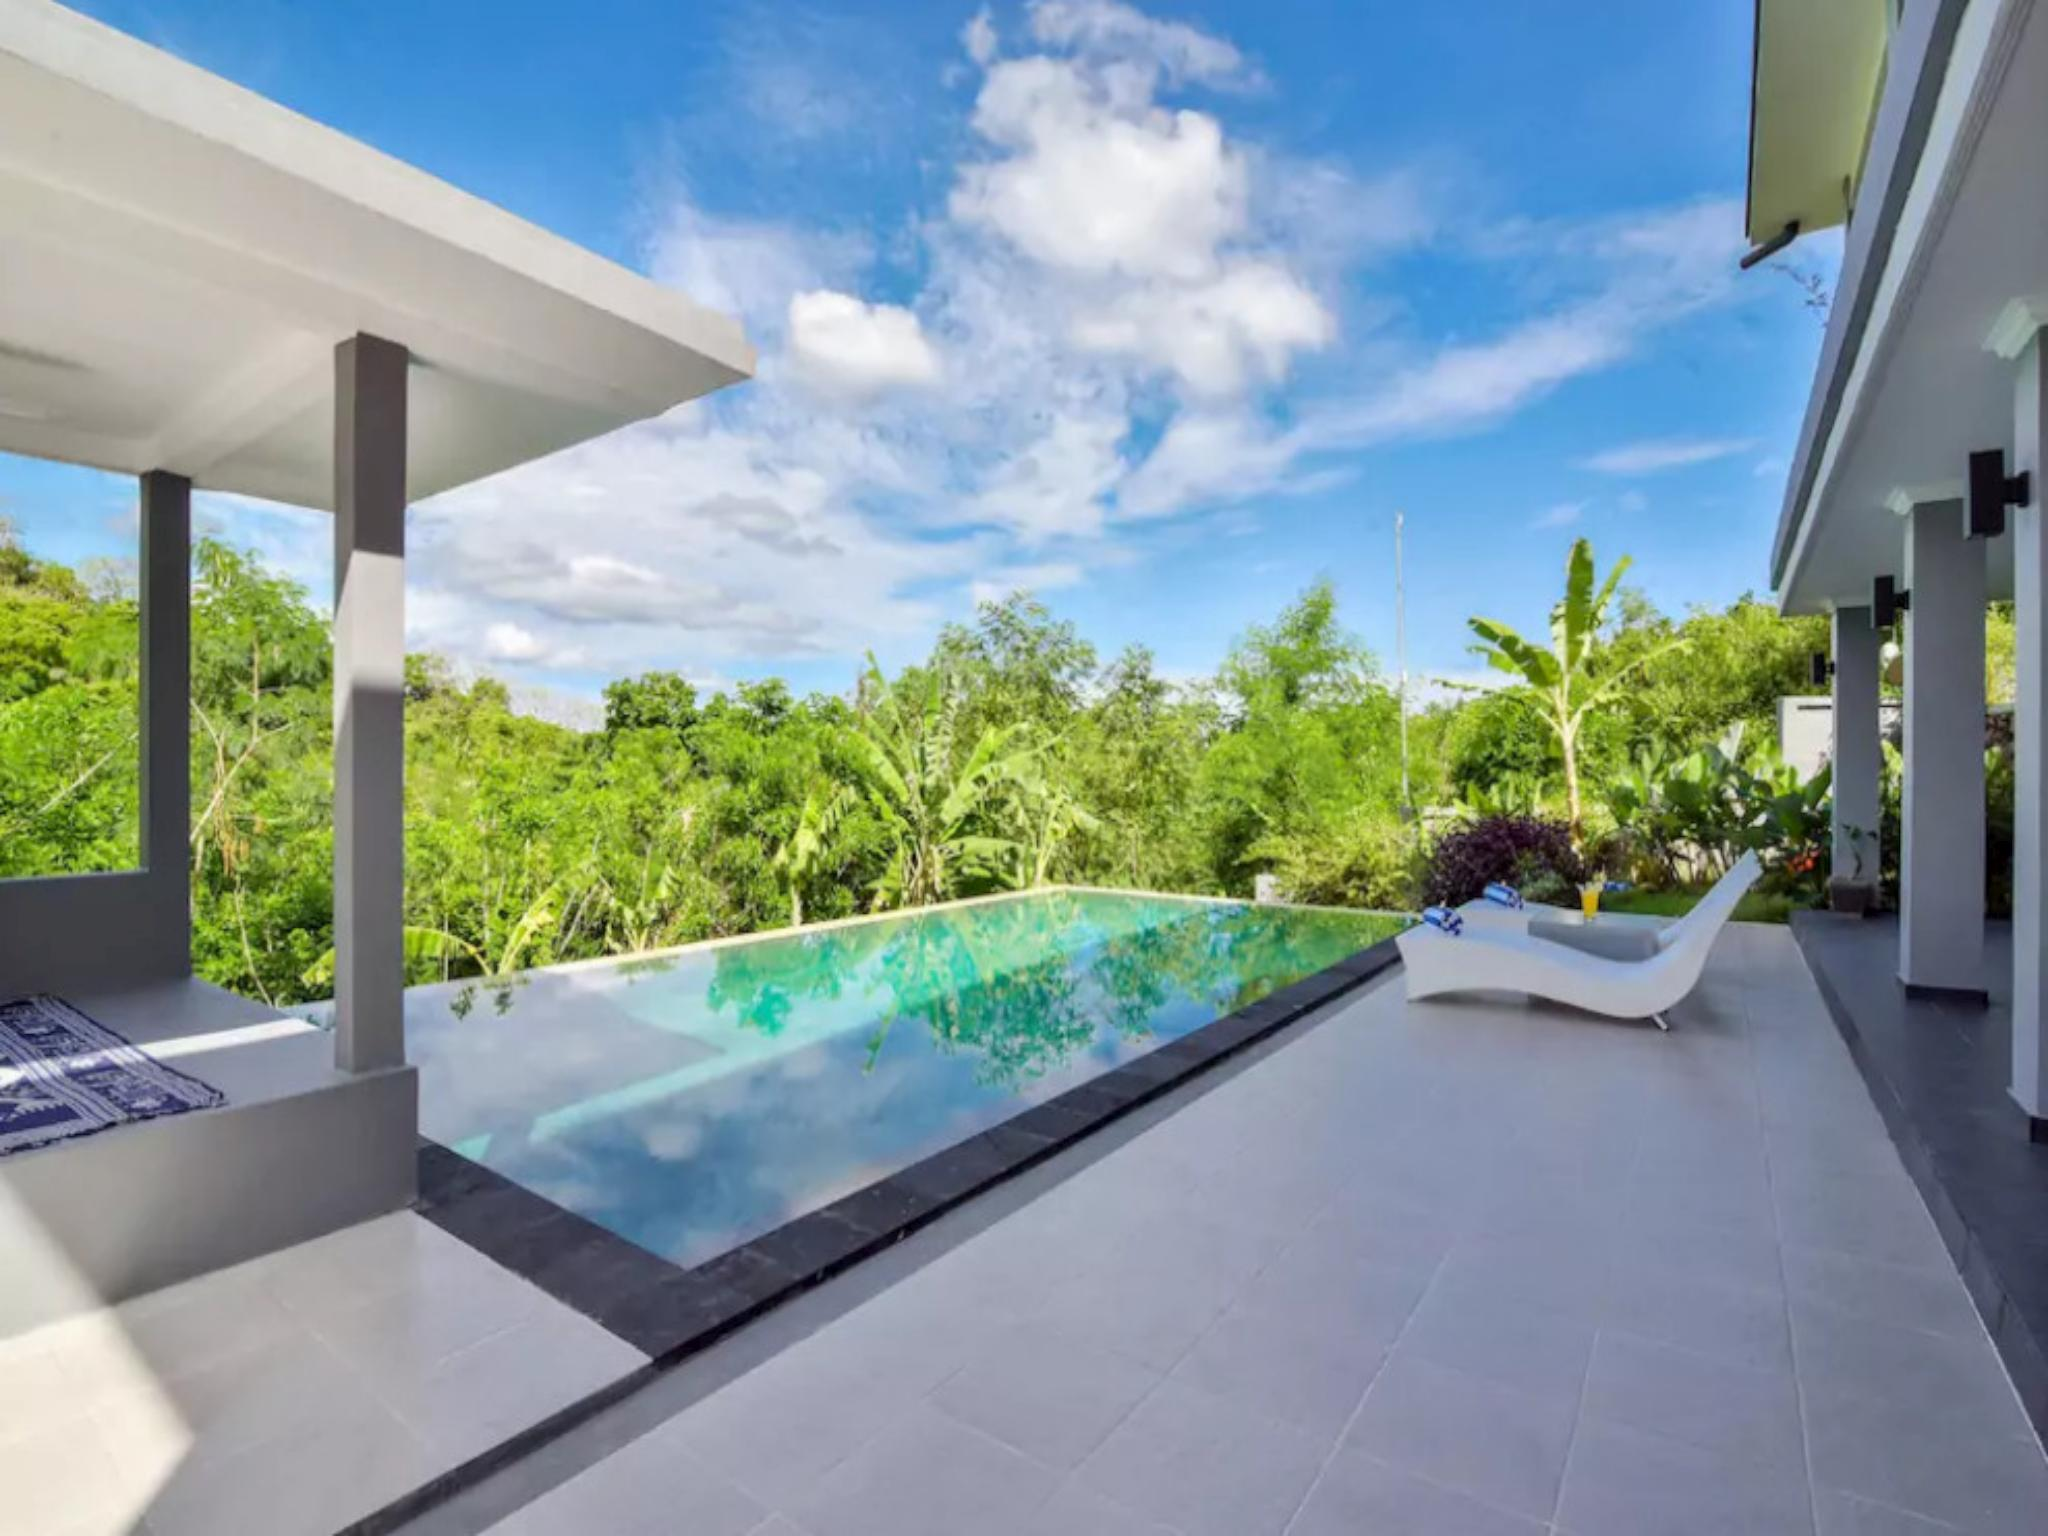 LUXURY 5 BEDROOM HILLSIDE VILLAS w/ STUNNING VIEWS